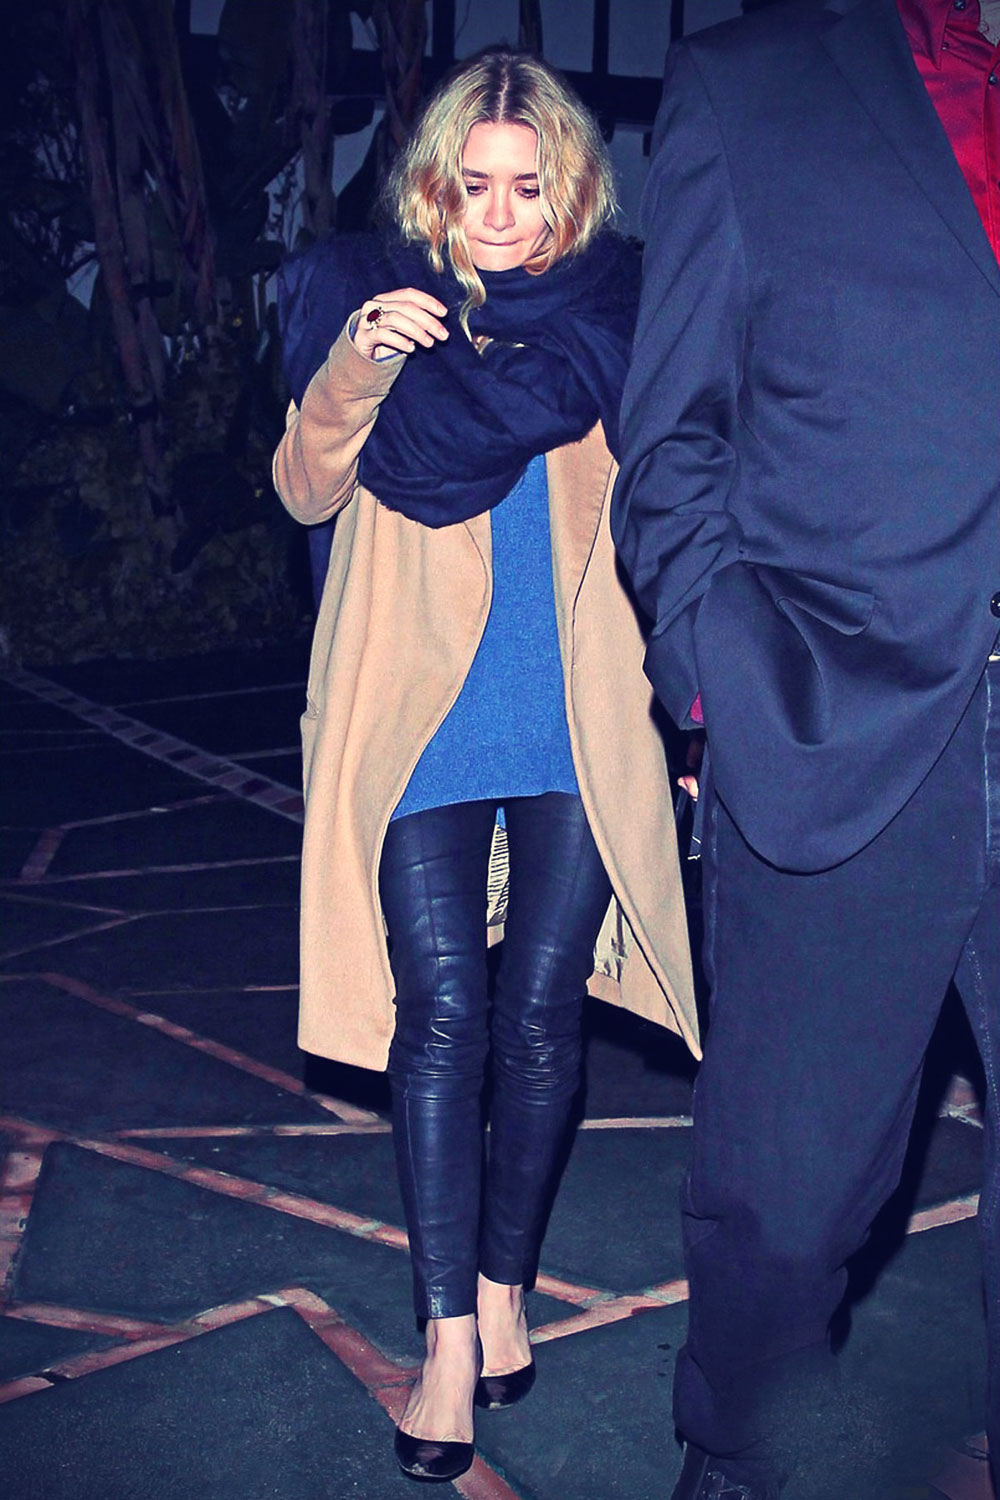 Ashley Olsen leaves a private Holiday party